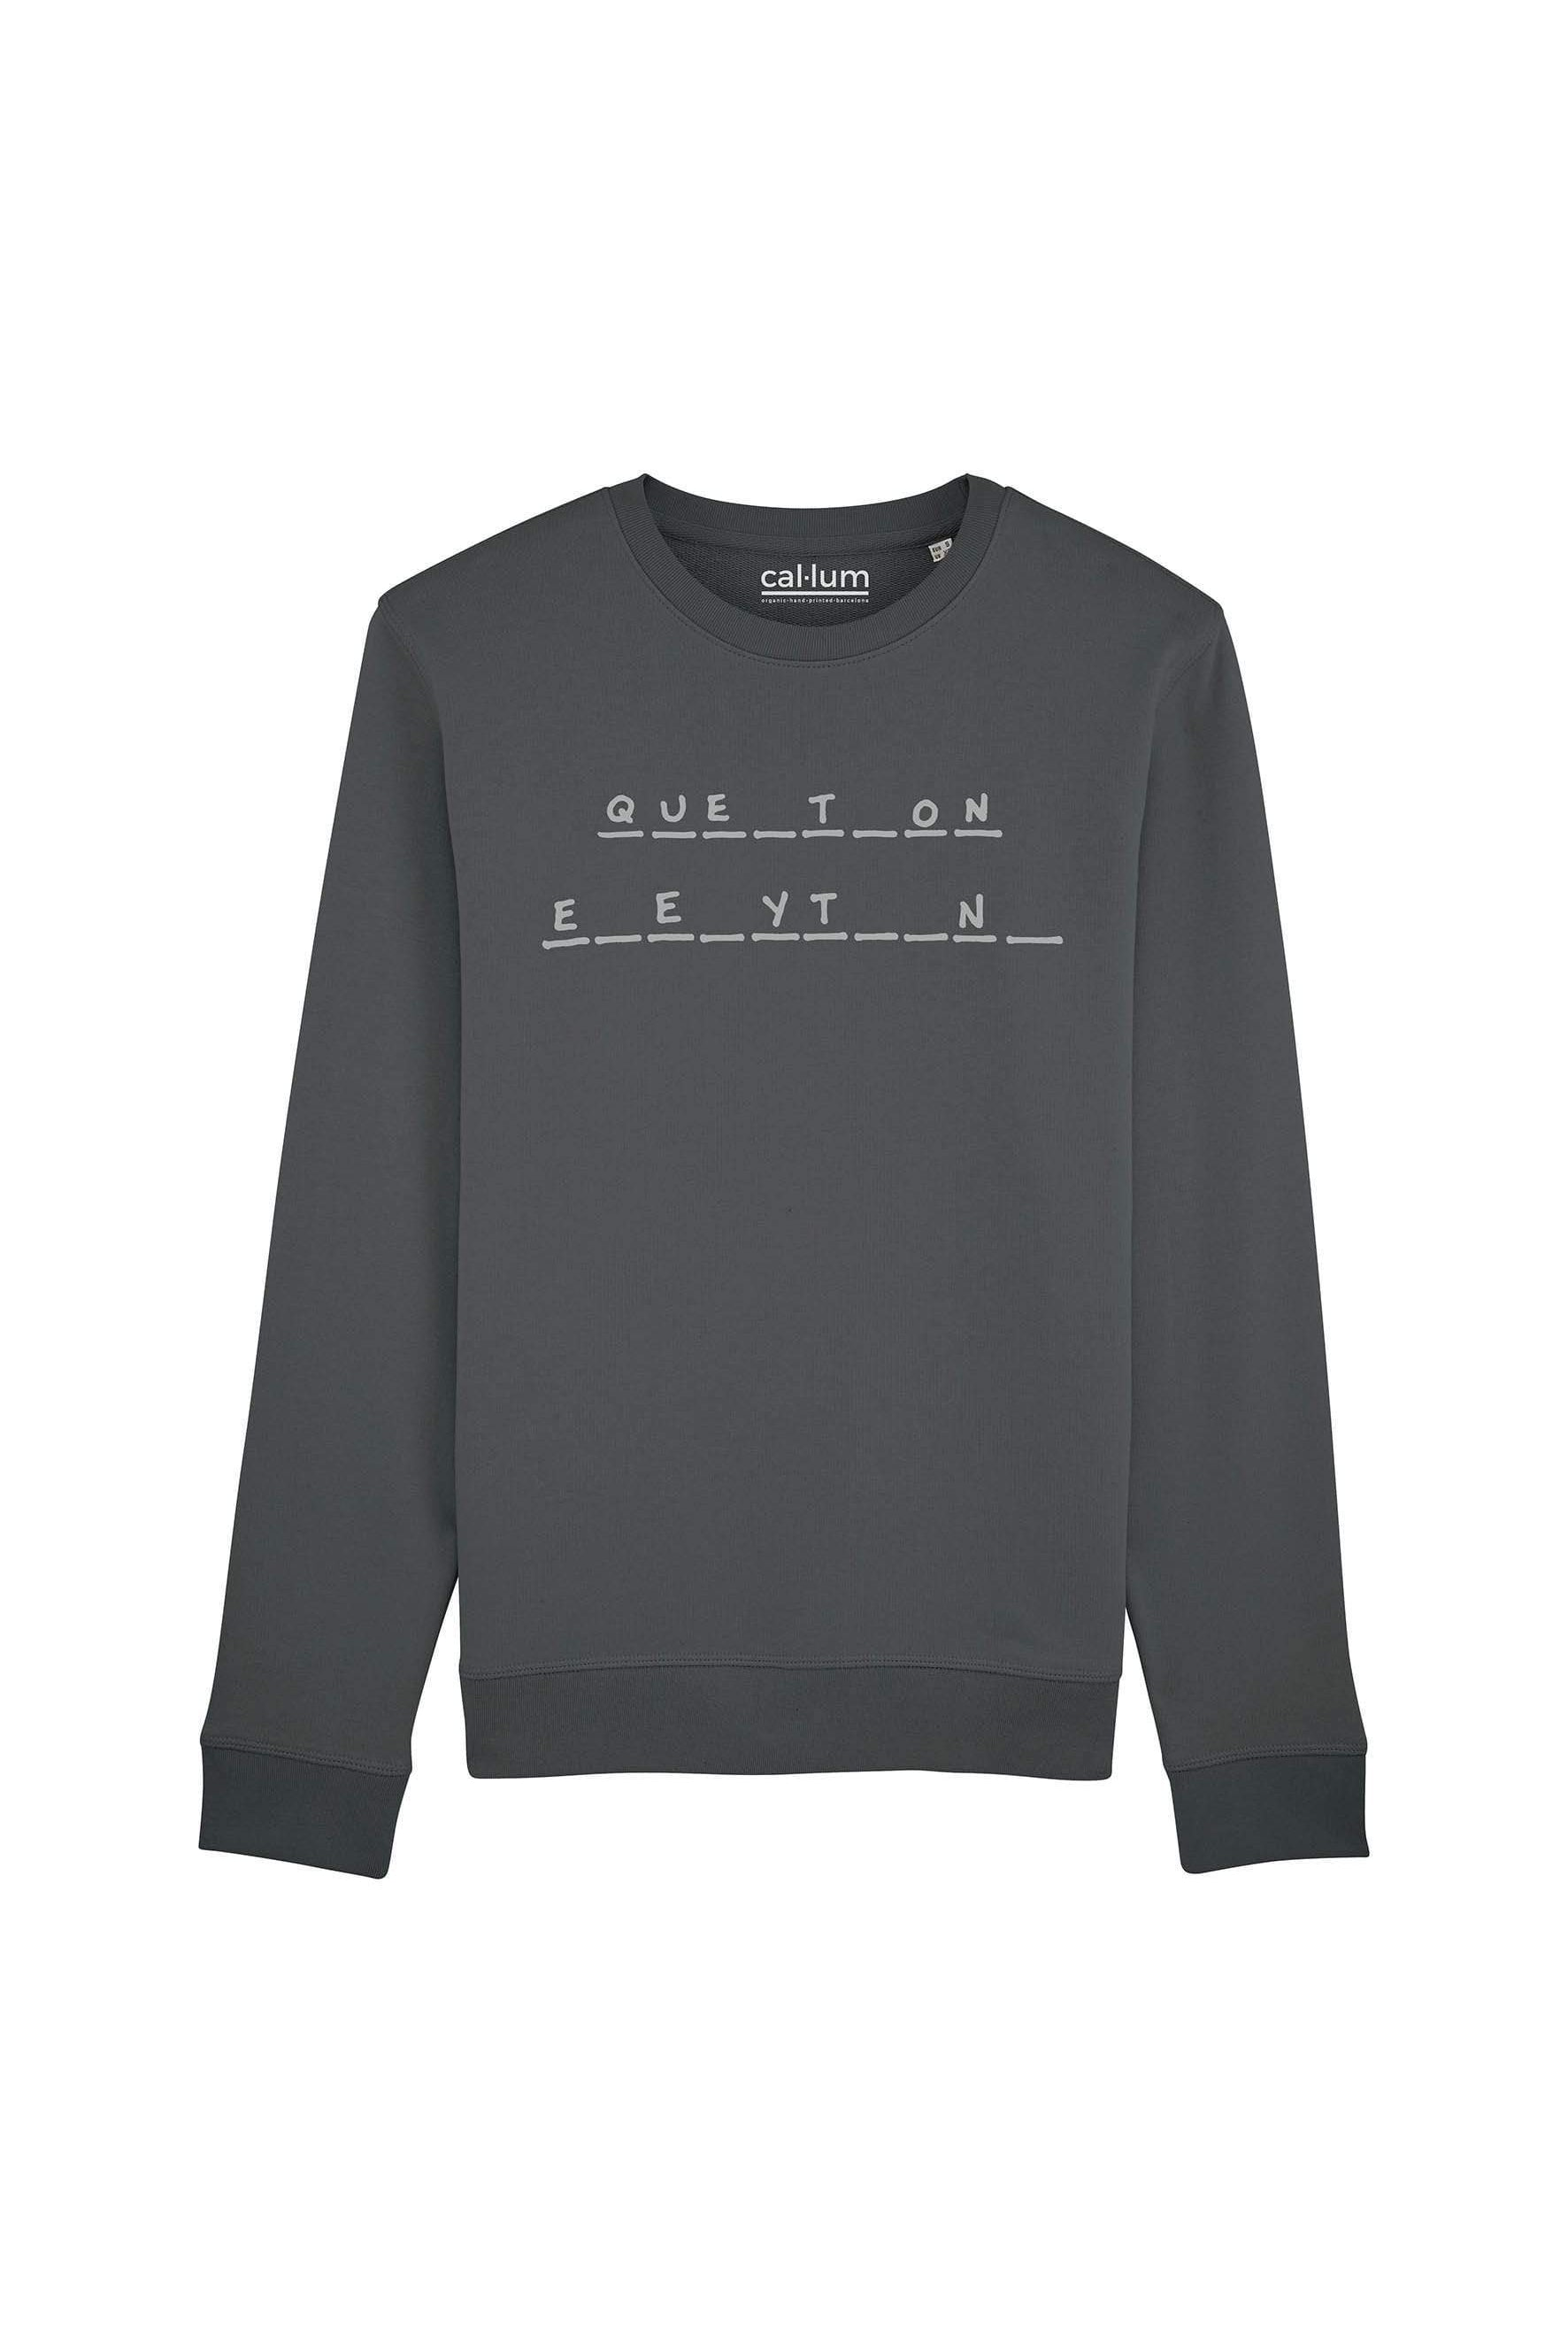 CAL-LUM sweatshirts · sudaderas question everything unisex sweatshirt sustainable fashion ethical fashion